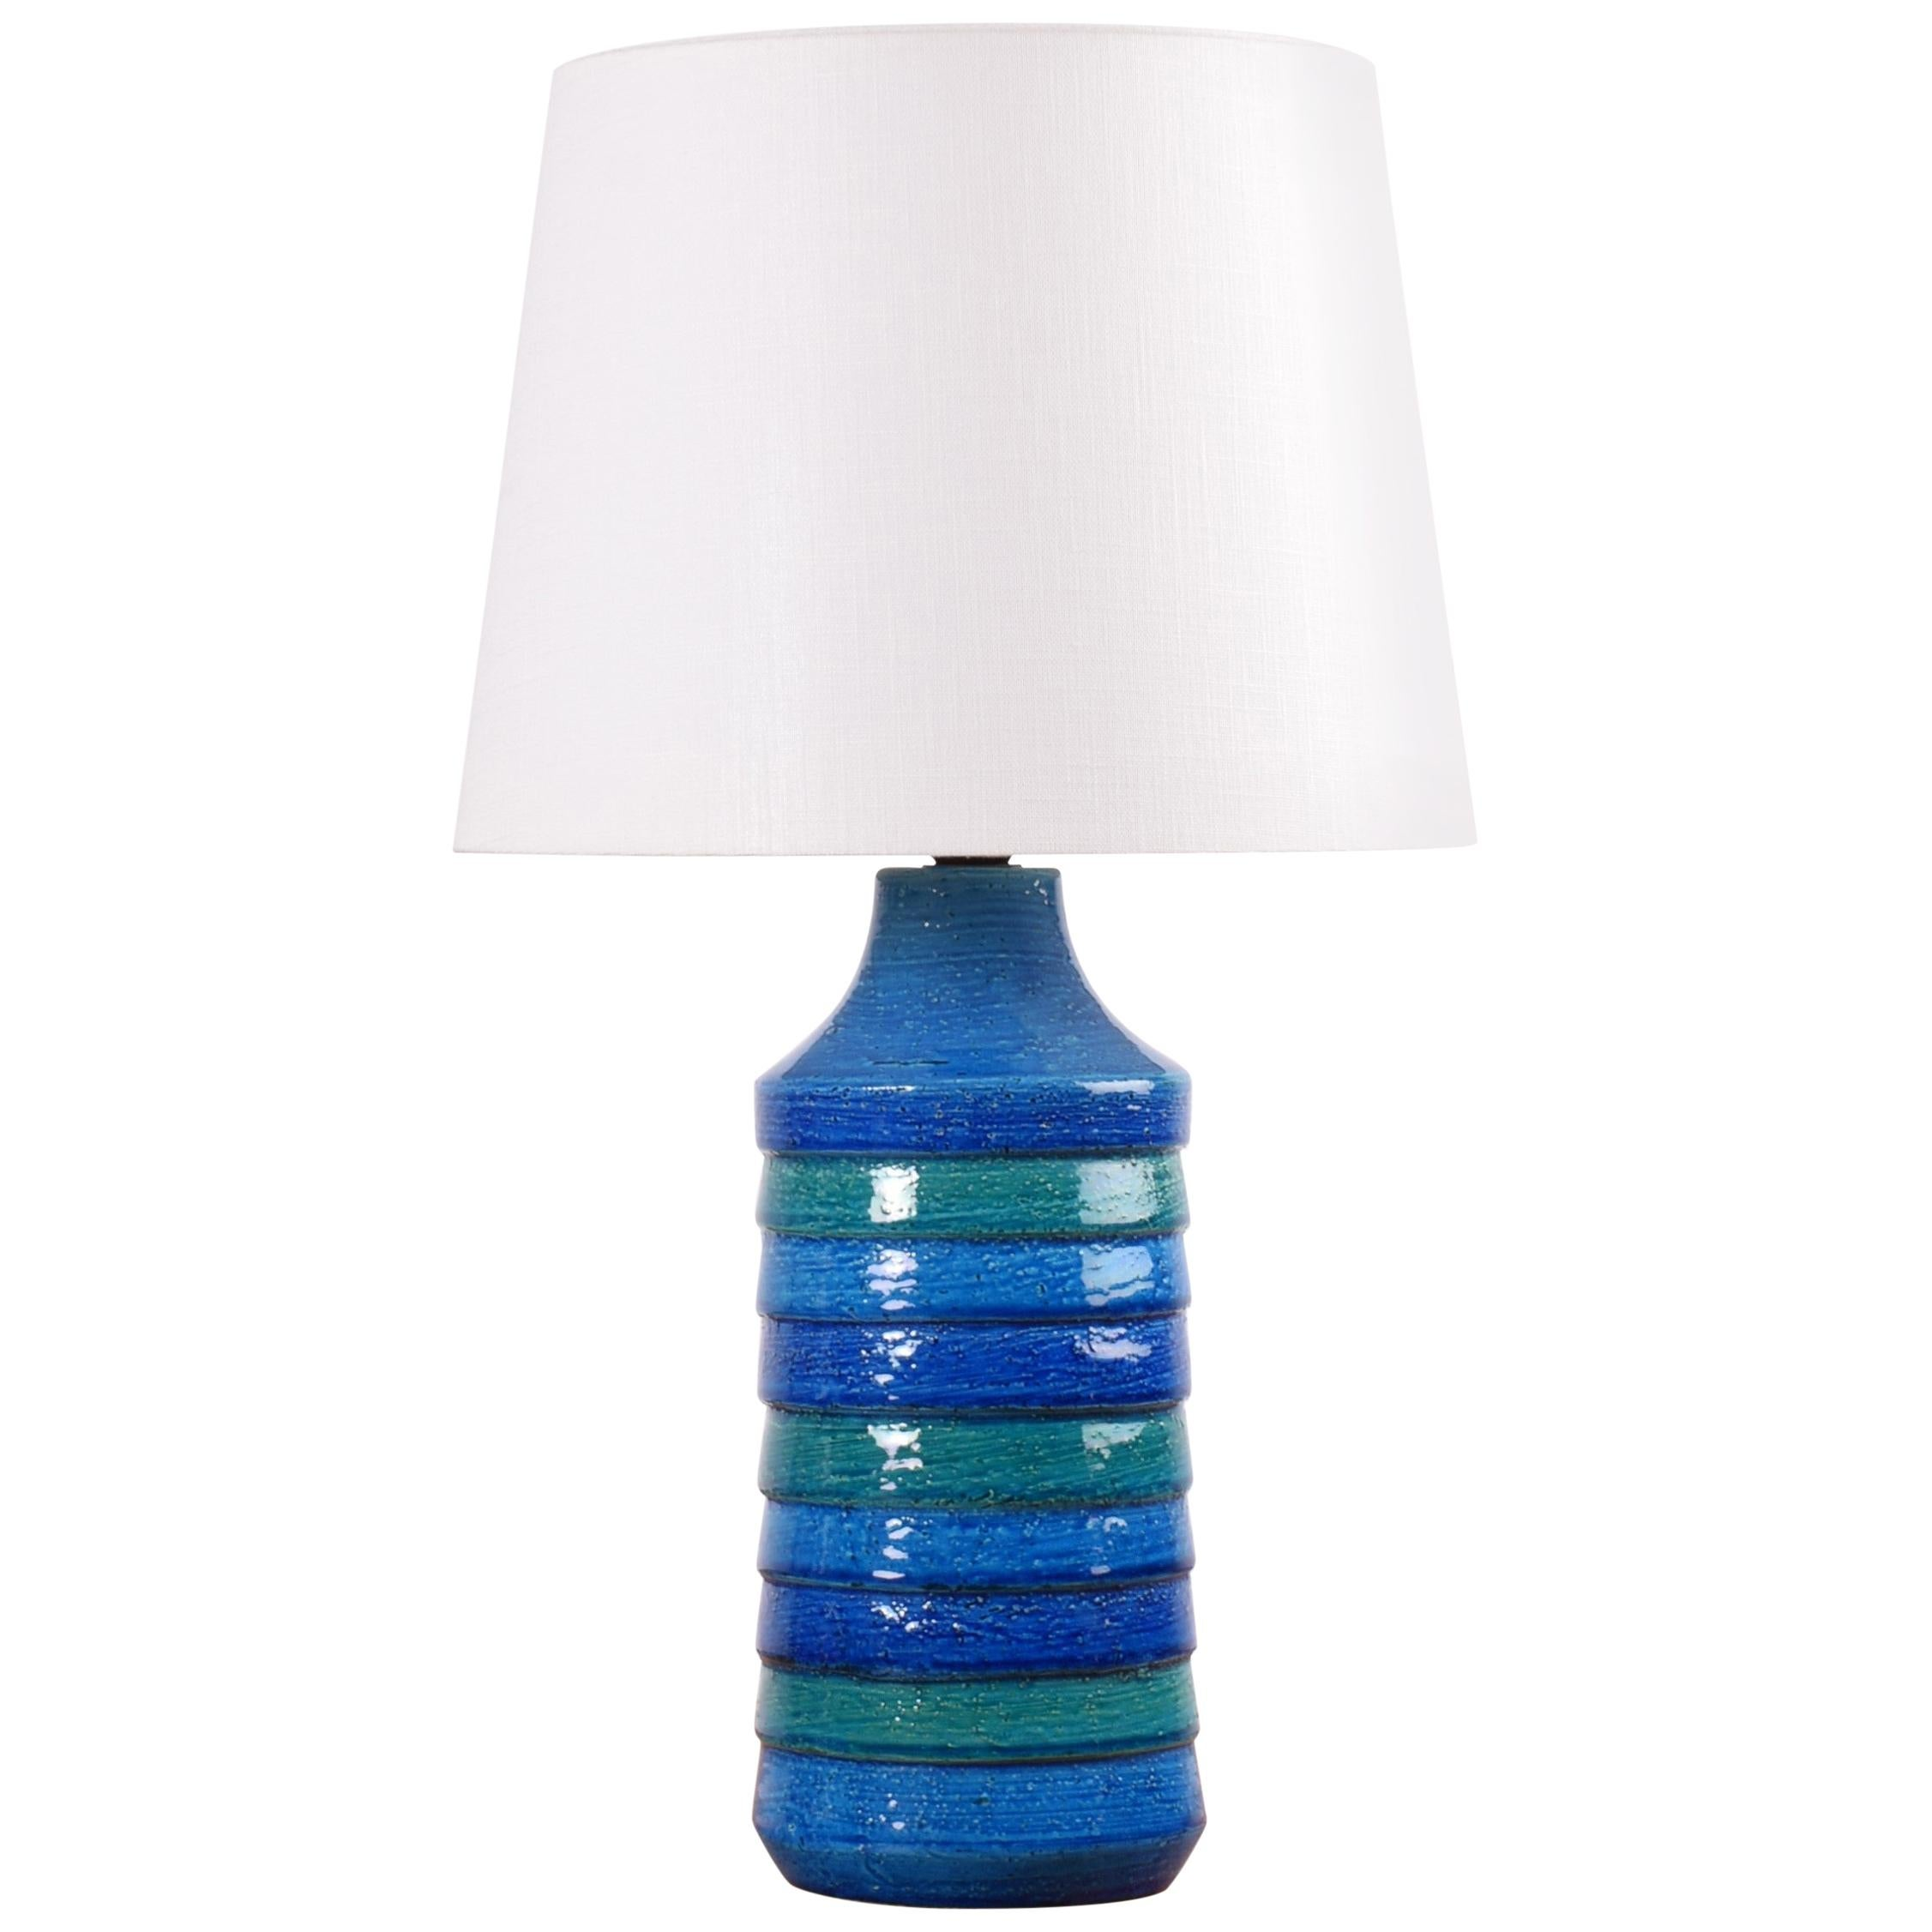 Italian Bitossi Ceramic Table Lamp Turquoise Blue Stripes with Lamp Shade, 1960s